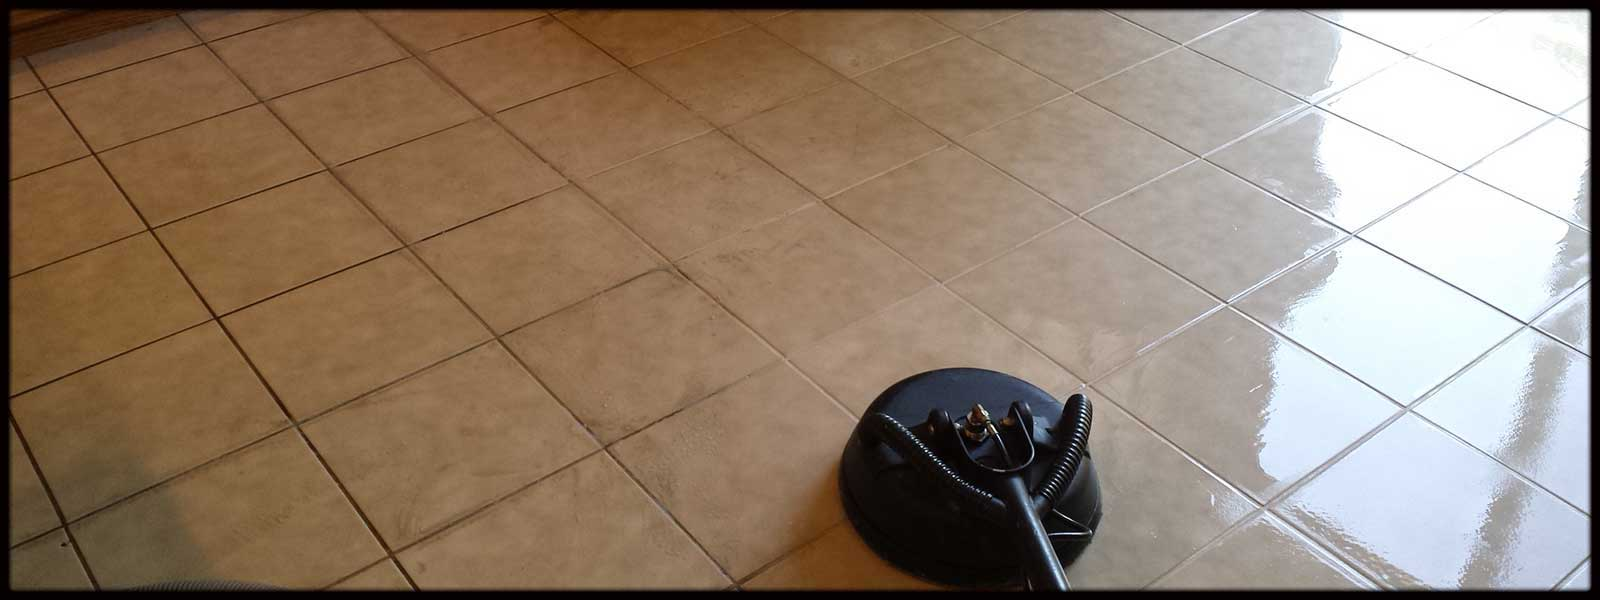 Tile grout stone cleaning sealing services gold coast flooring tile grout cleaning sealing roseville rocklin folsom sacramento dailygadgetfo Image collections